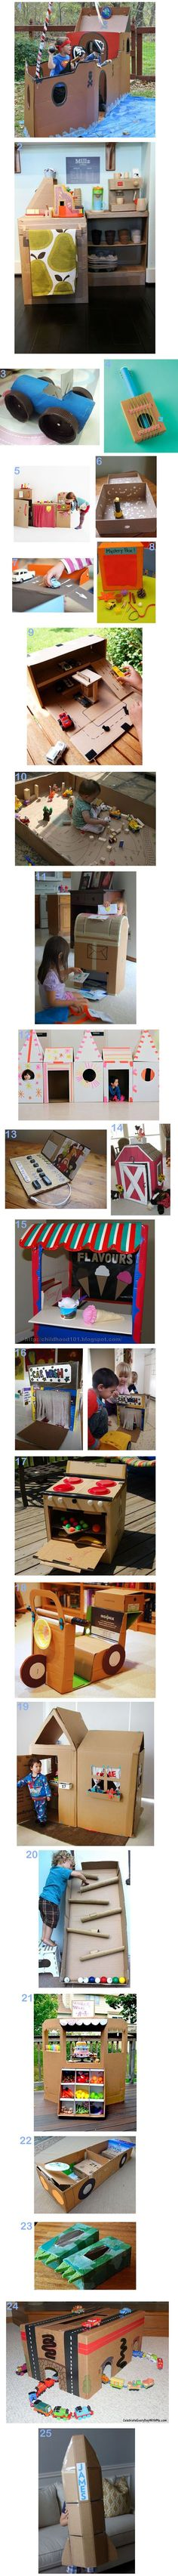 scatoloni che avanzano + bambini = .... 25 Ideas for a Cardboard Box!